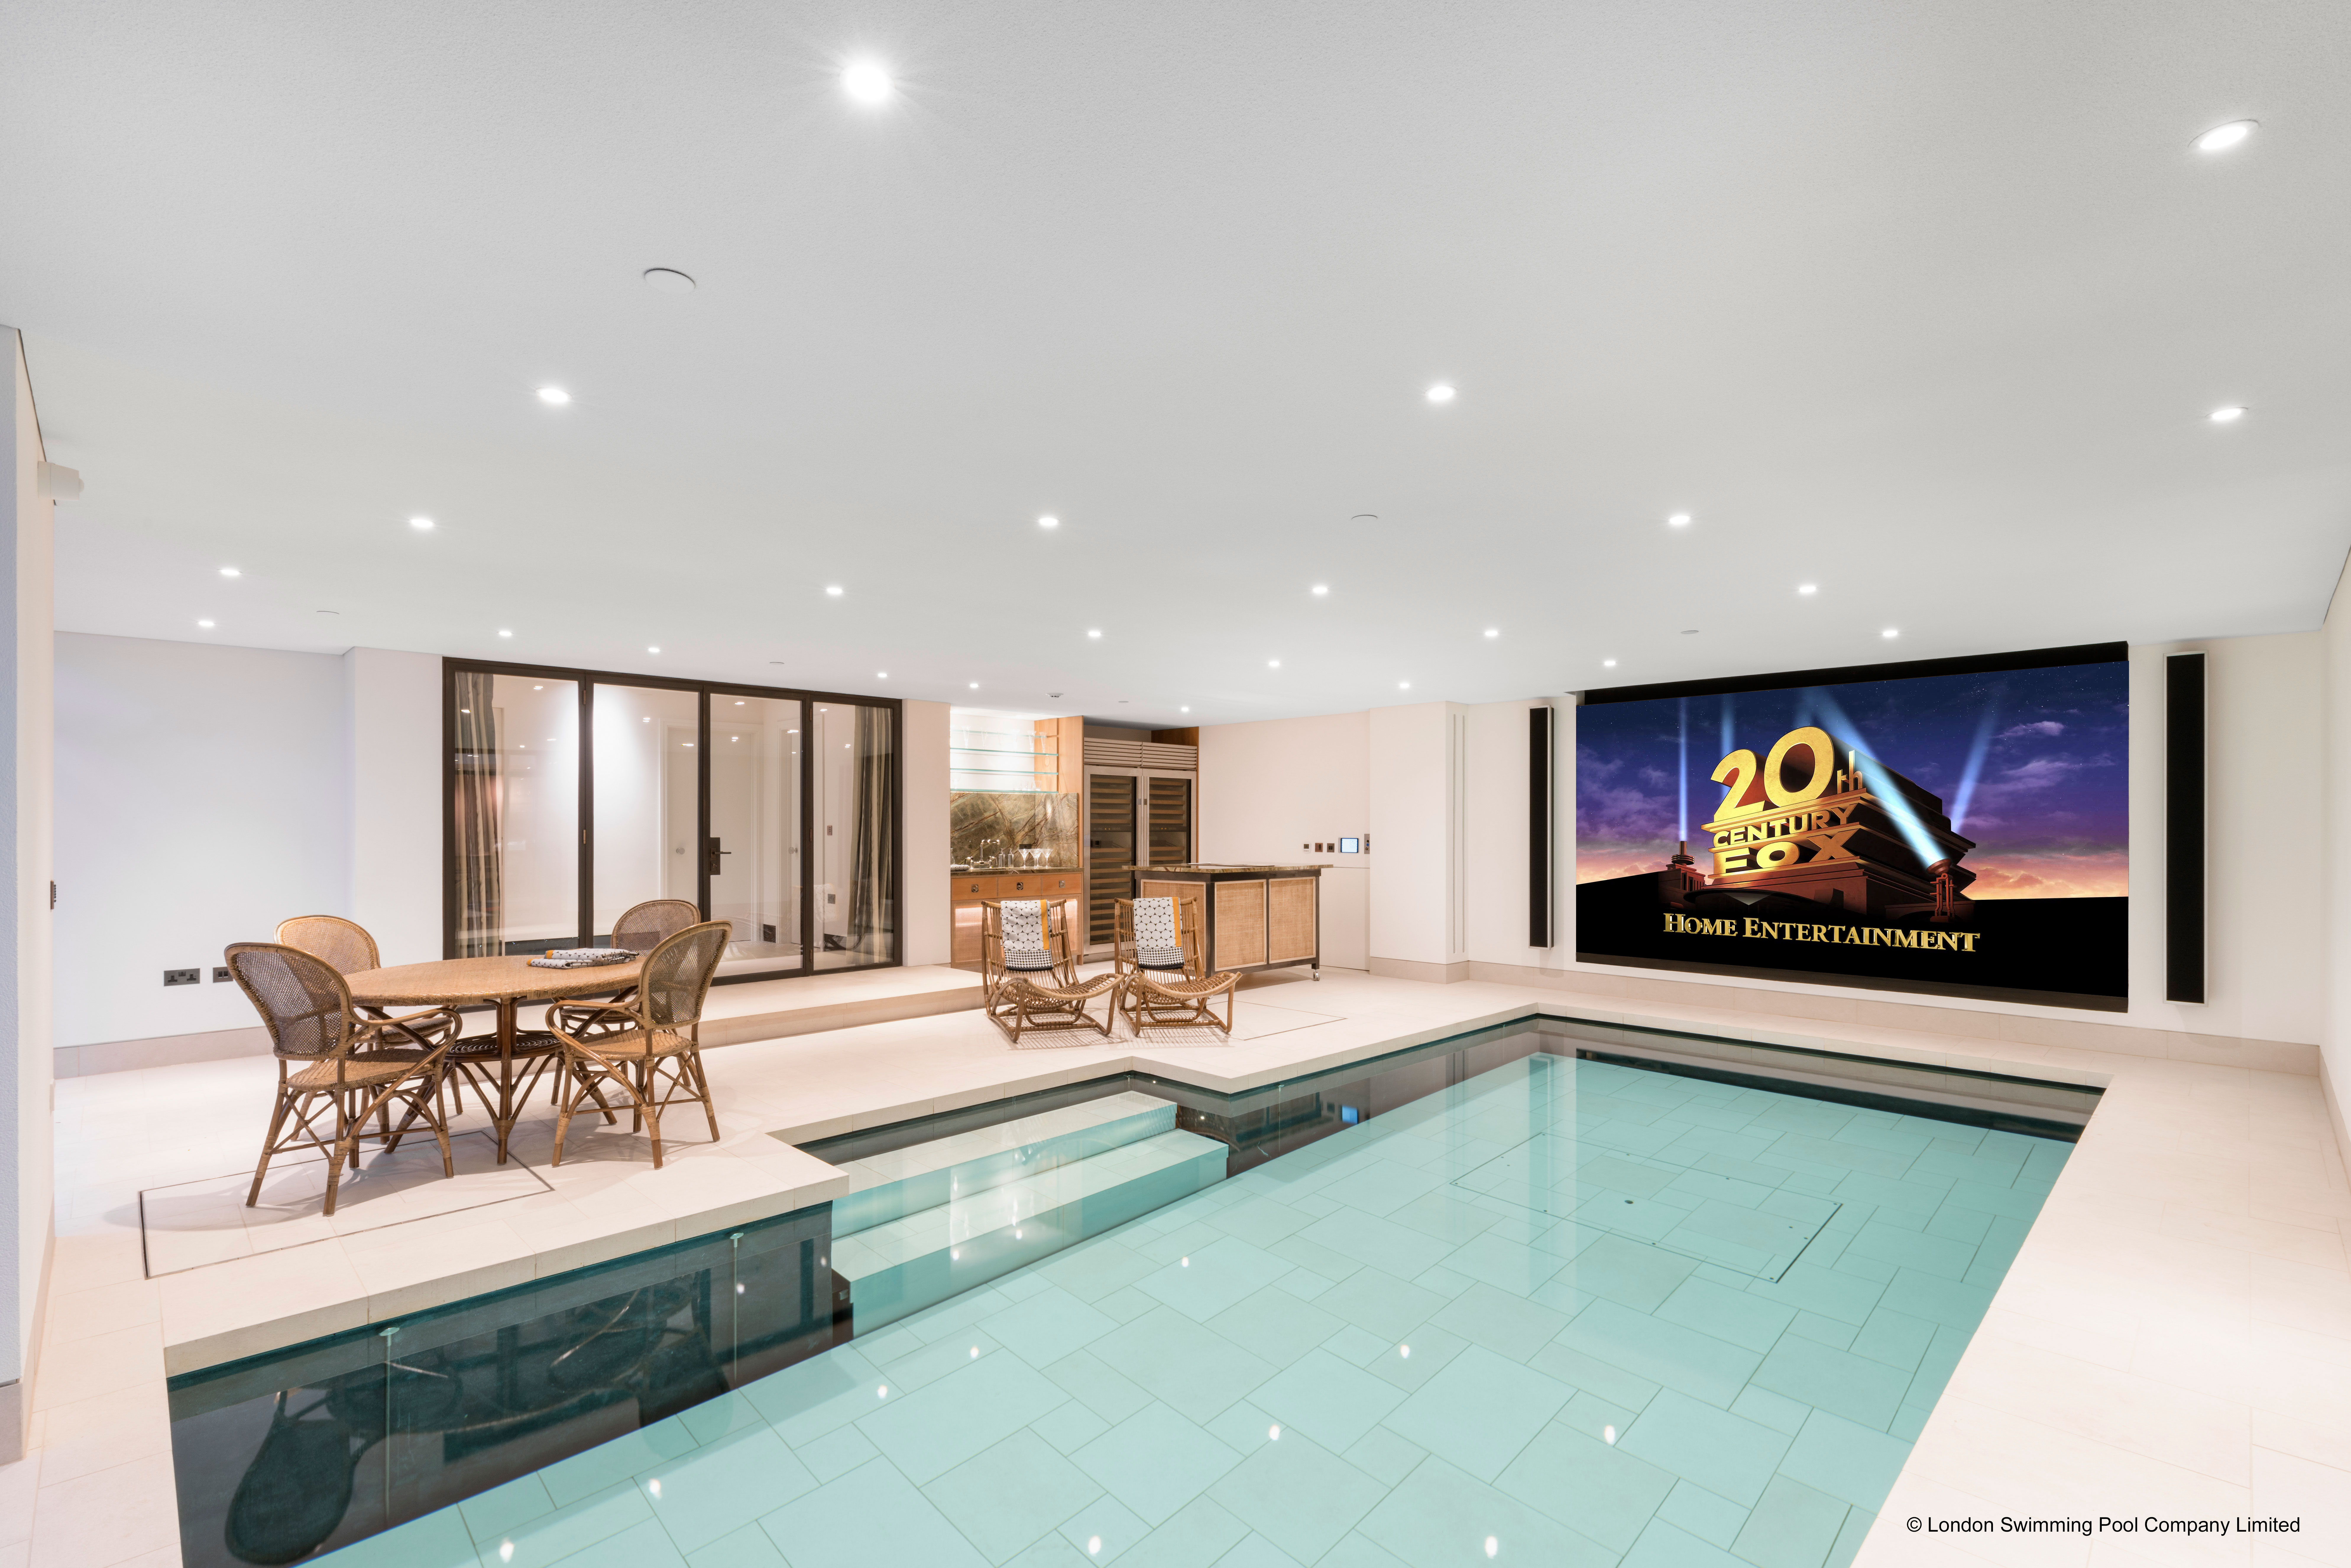 Energy Efficient Luxury Pool An Award Winning, State Of The Art, Energy  Efficient Pool Which Runs On A Fraction Of The Cost Of A Normal Indoor Pool  Of ...